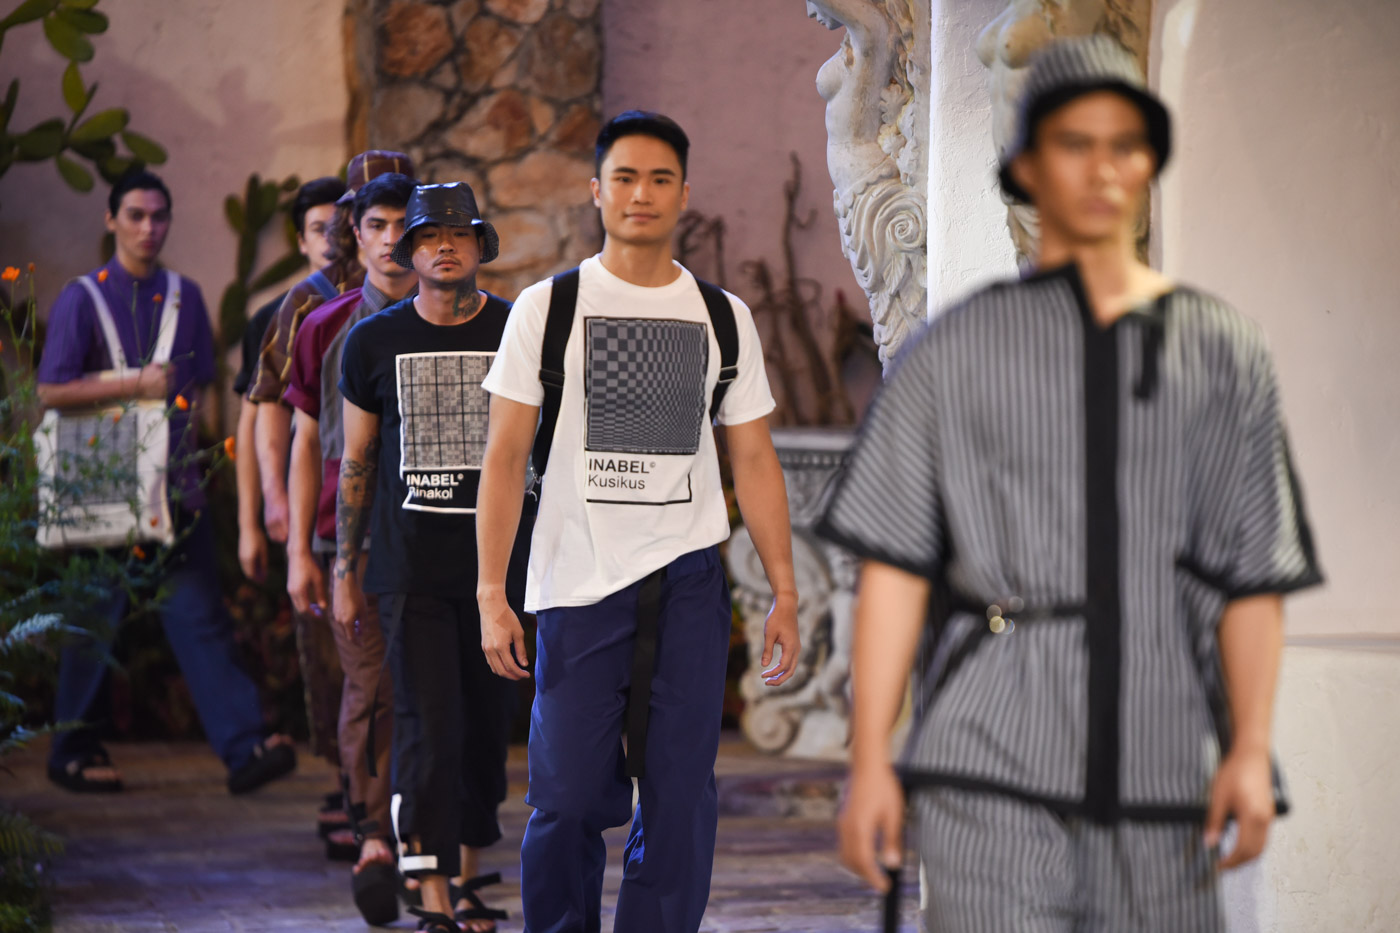 MEN'S WEAR. Otto Sacramento's collection using inabel.